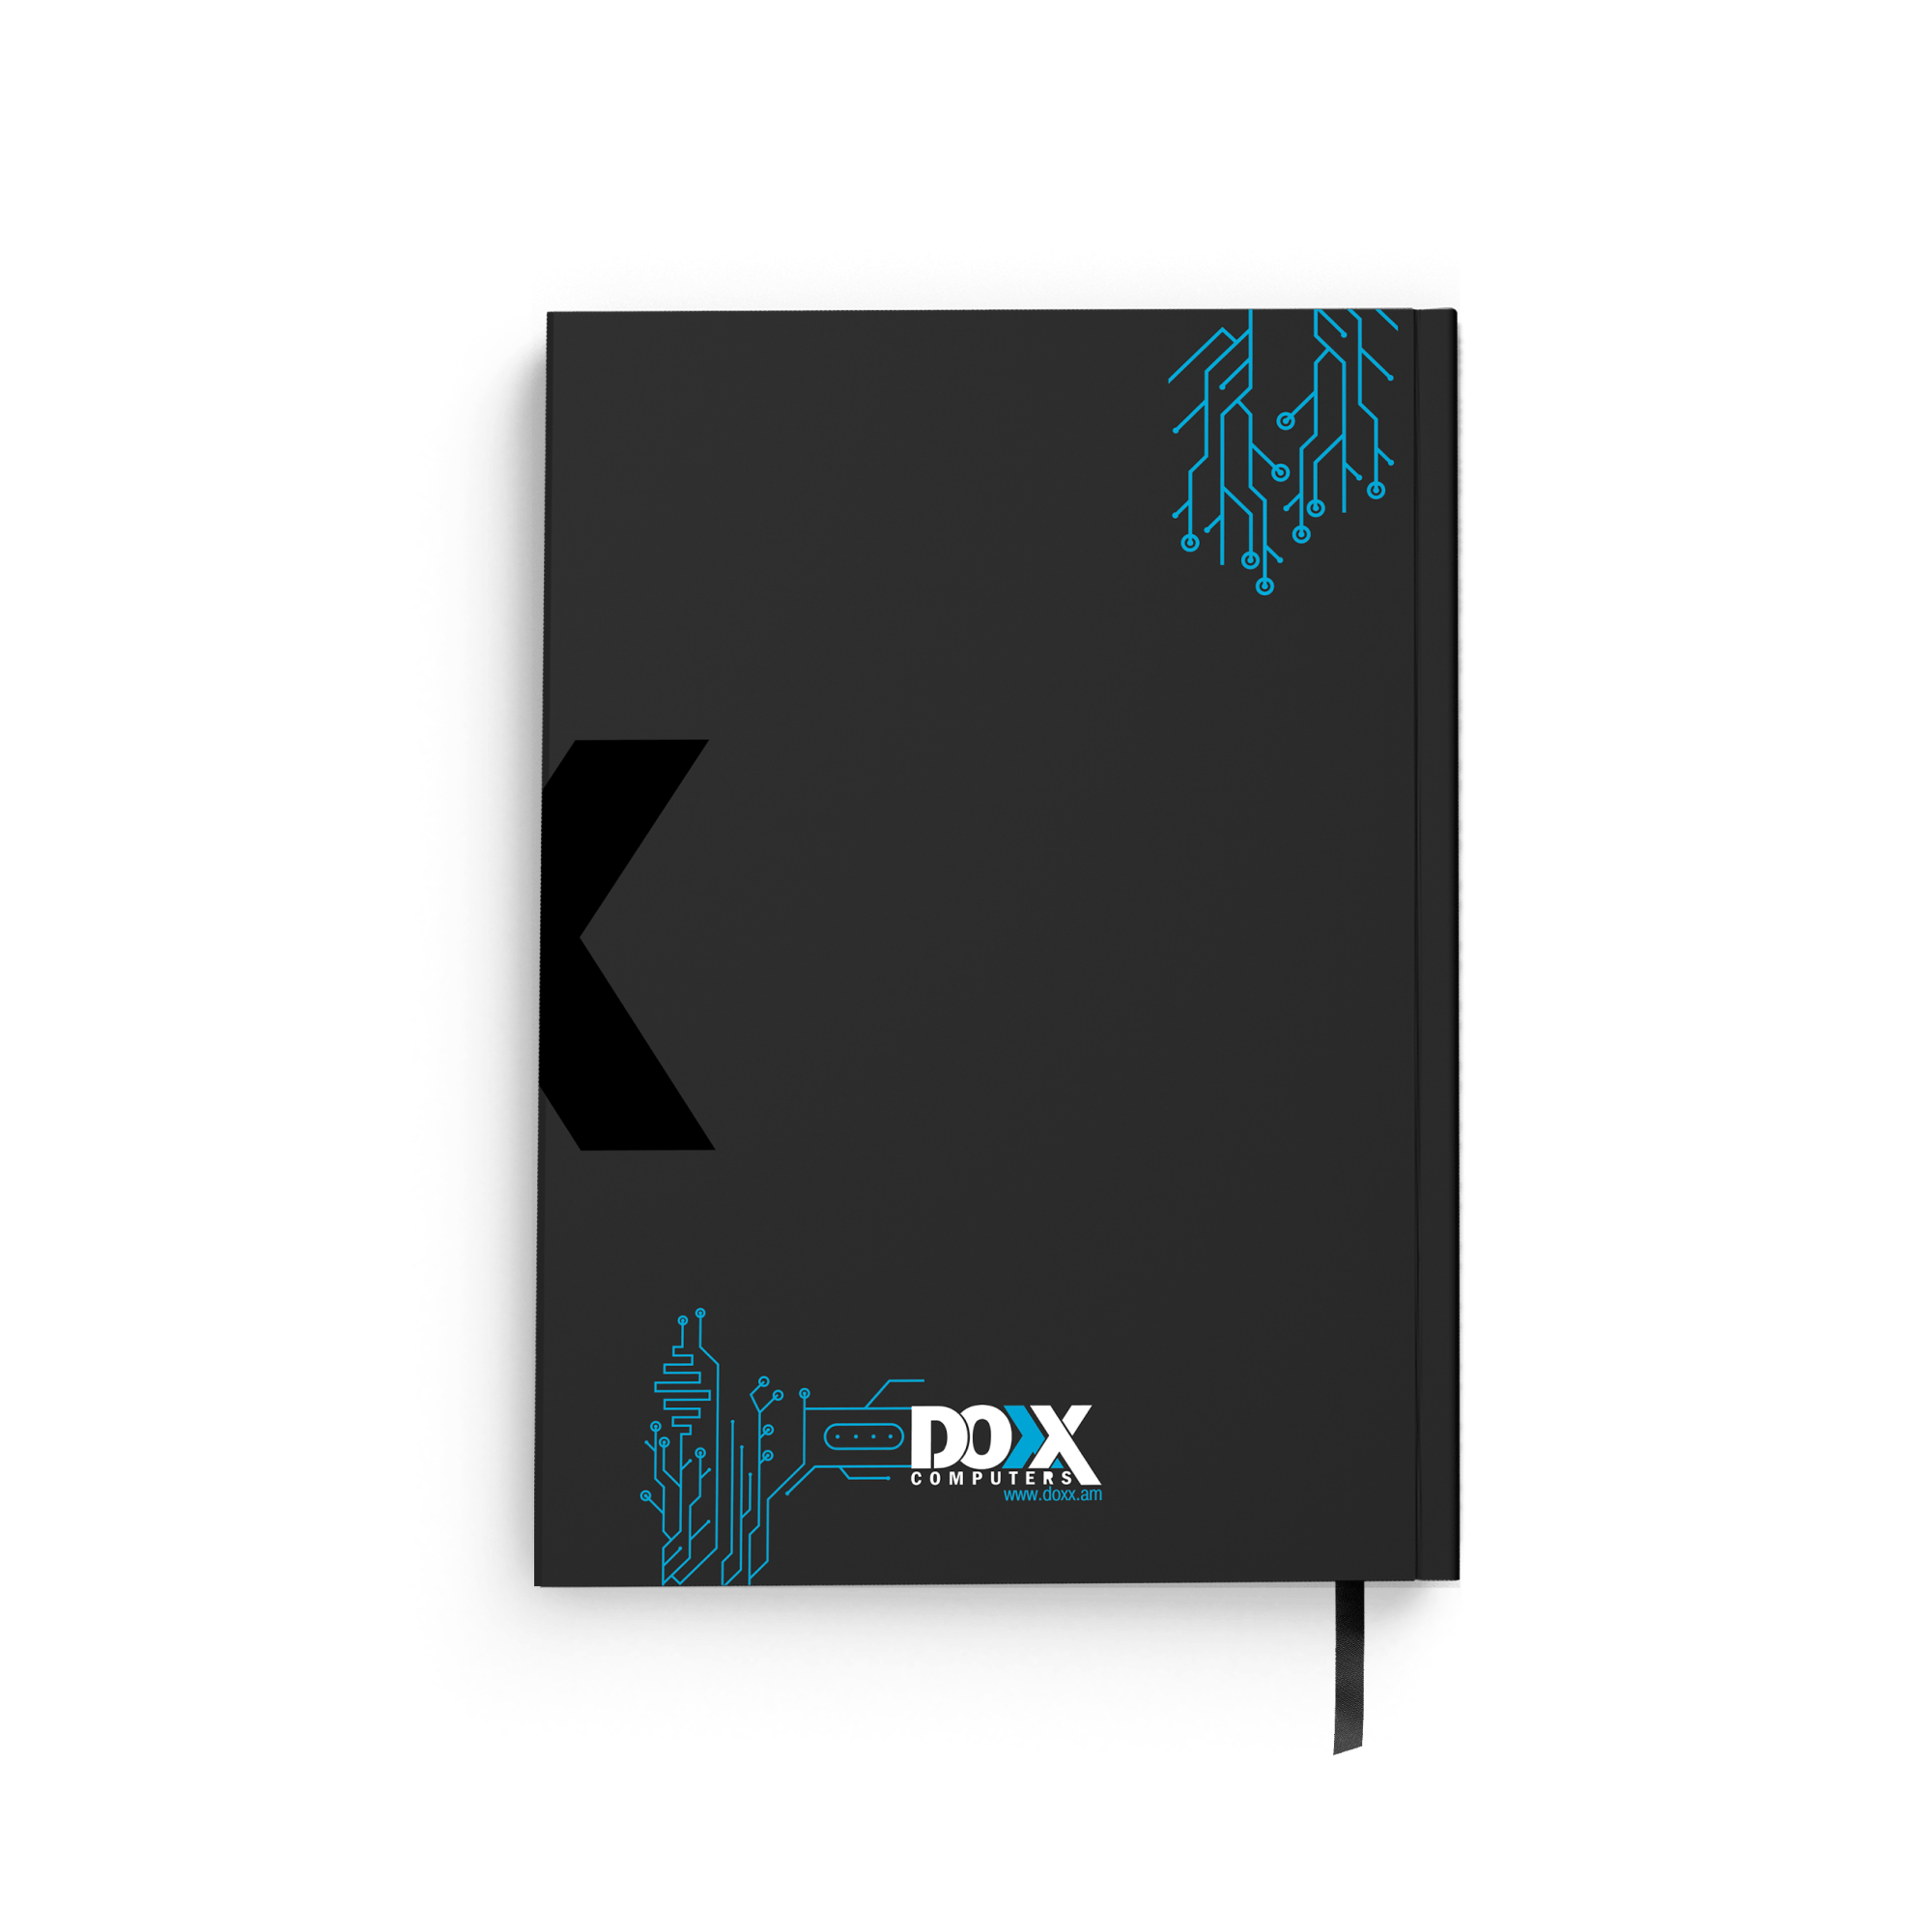 Doxx hard cover back